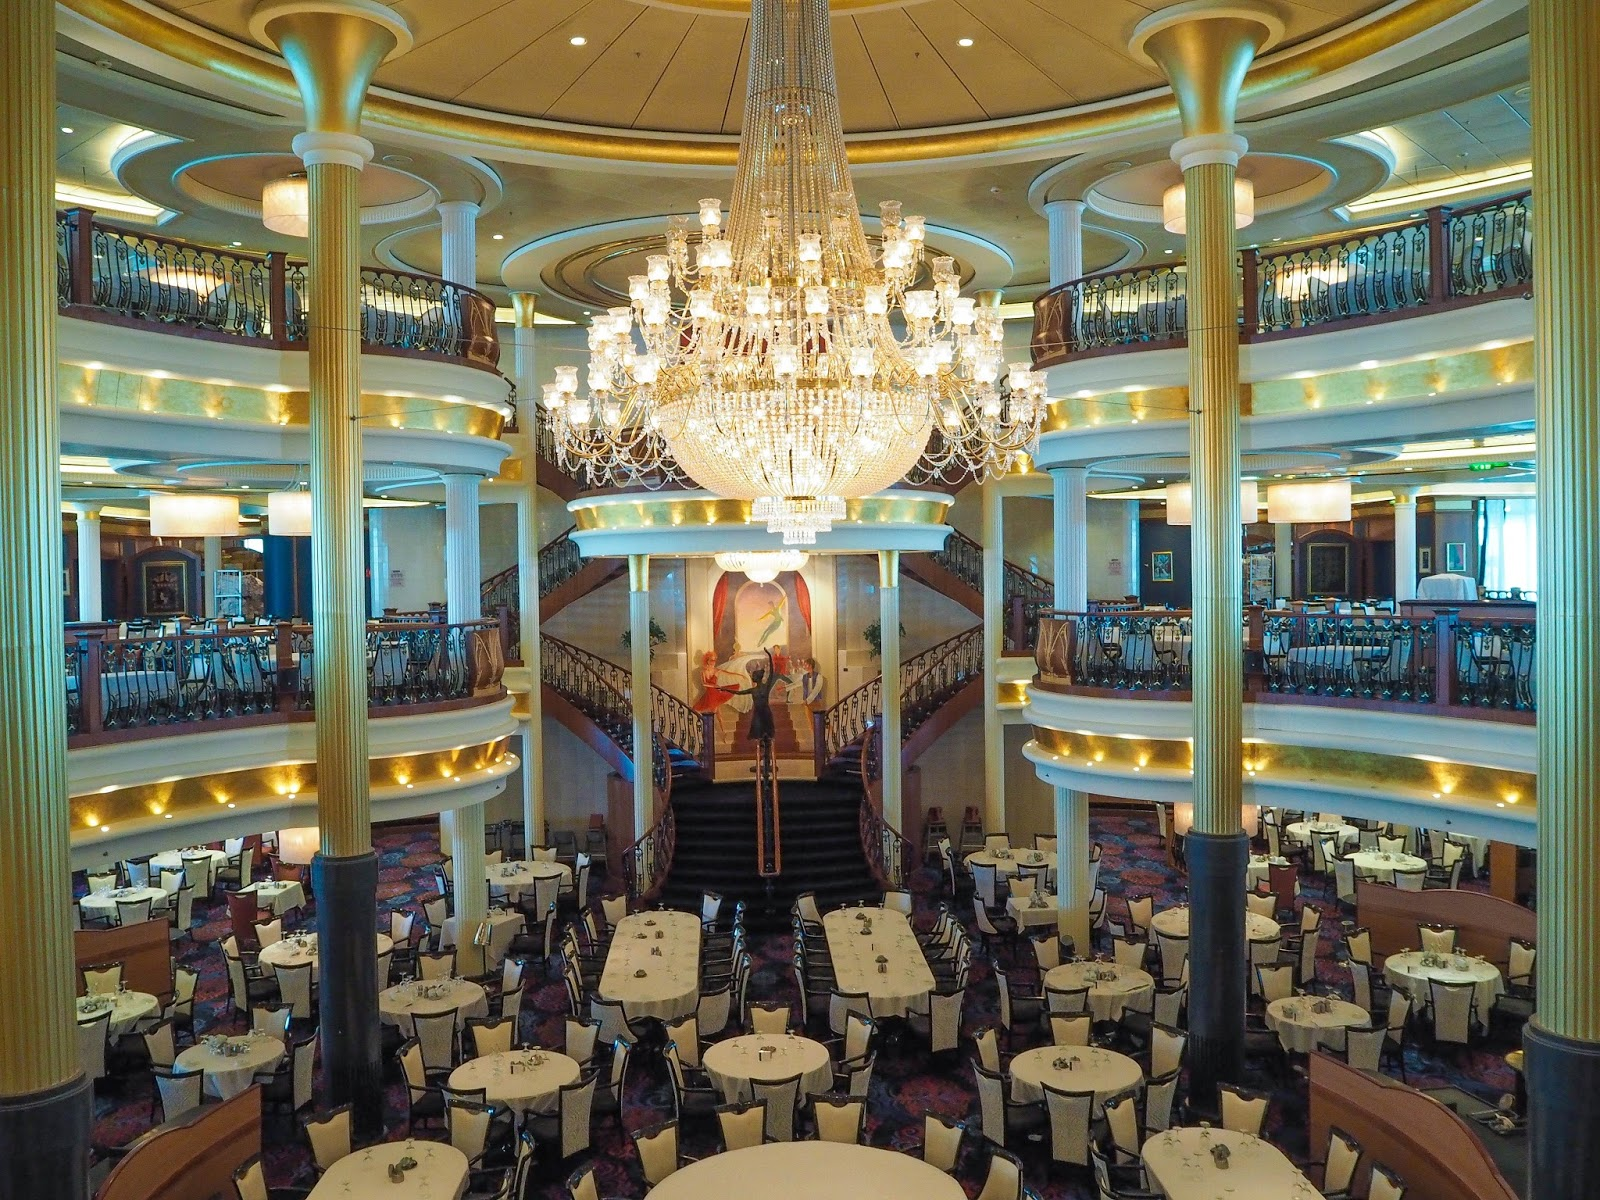 Dining room at Royal Caribbean's Navigator of the Seas Cruise Ship